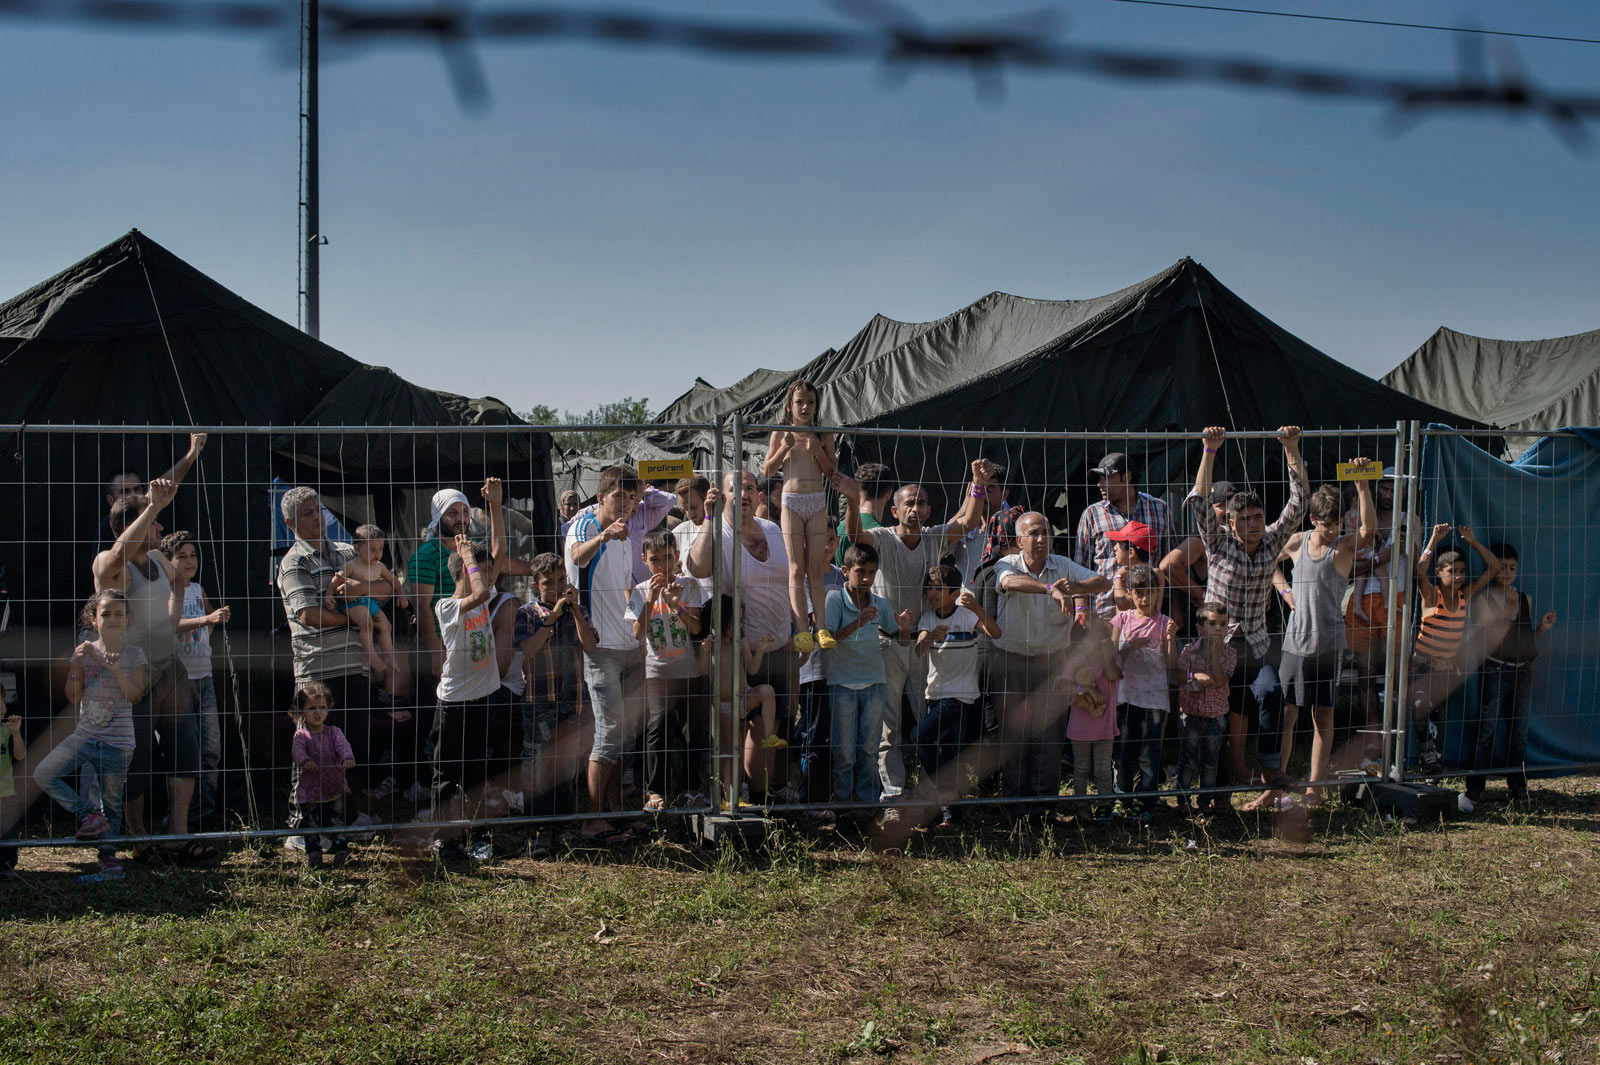 A group of migrants waits at a makeshift detention camp for Hungarian authorities to register their arrival in the European Union.                     Roszke, Hungary, Aug. 29, 2015.